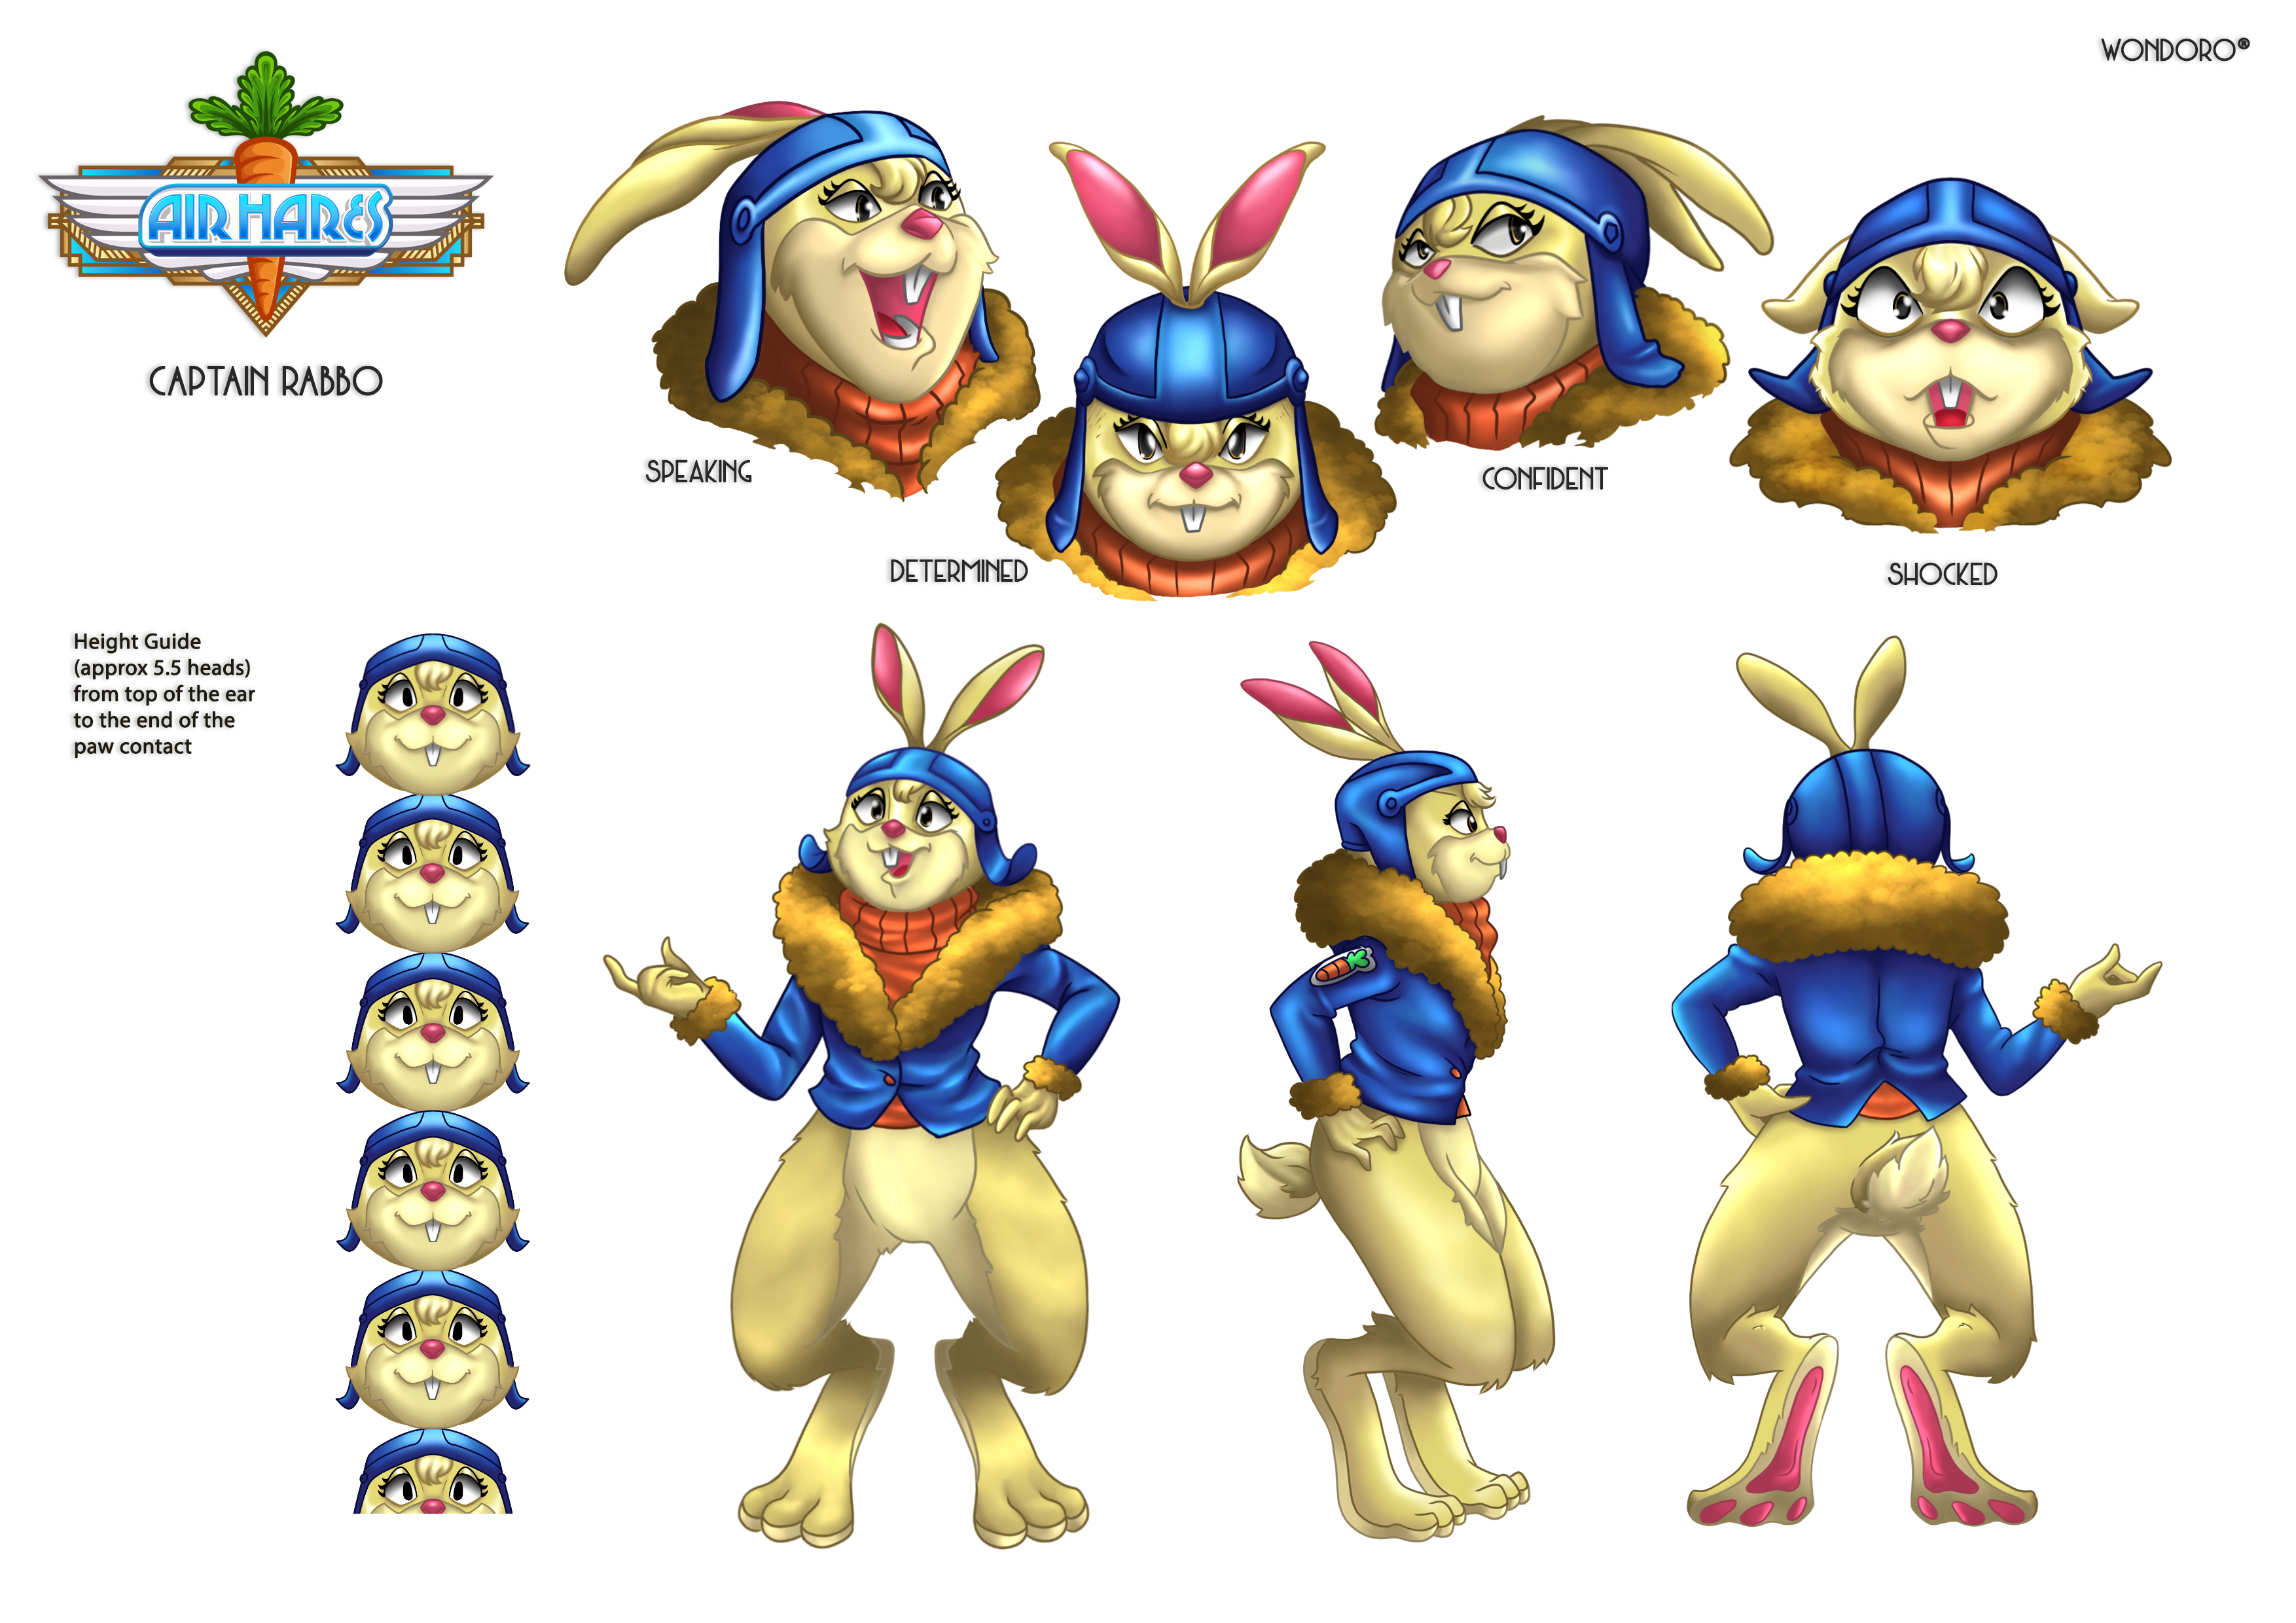 The character sheet for Captain Rabbo, which depicts several poses and expressions as well as her full-body outfit.